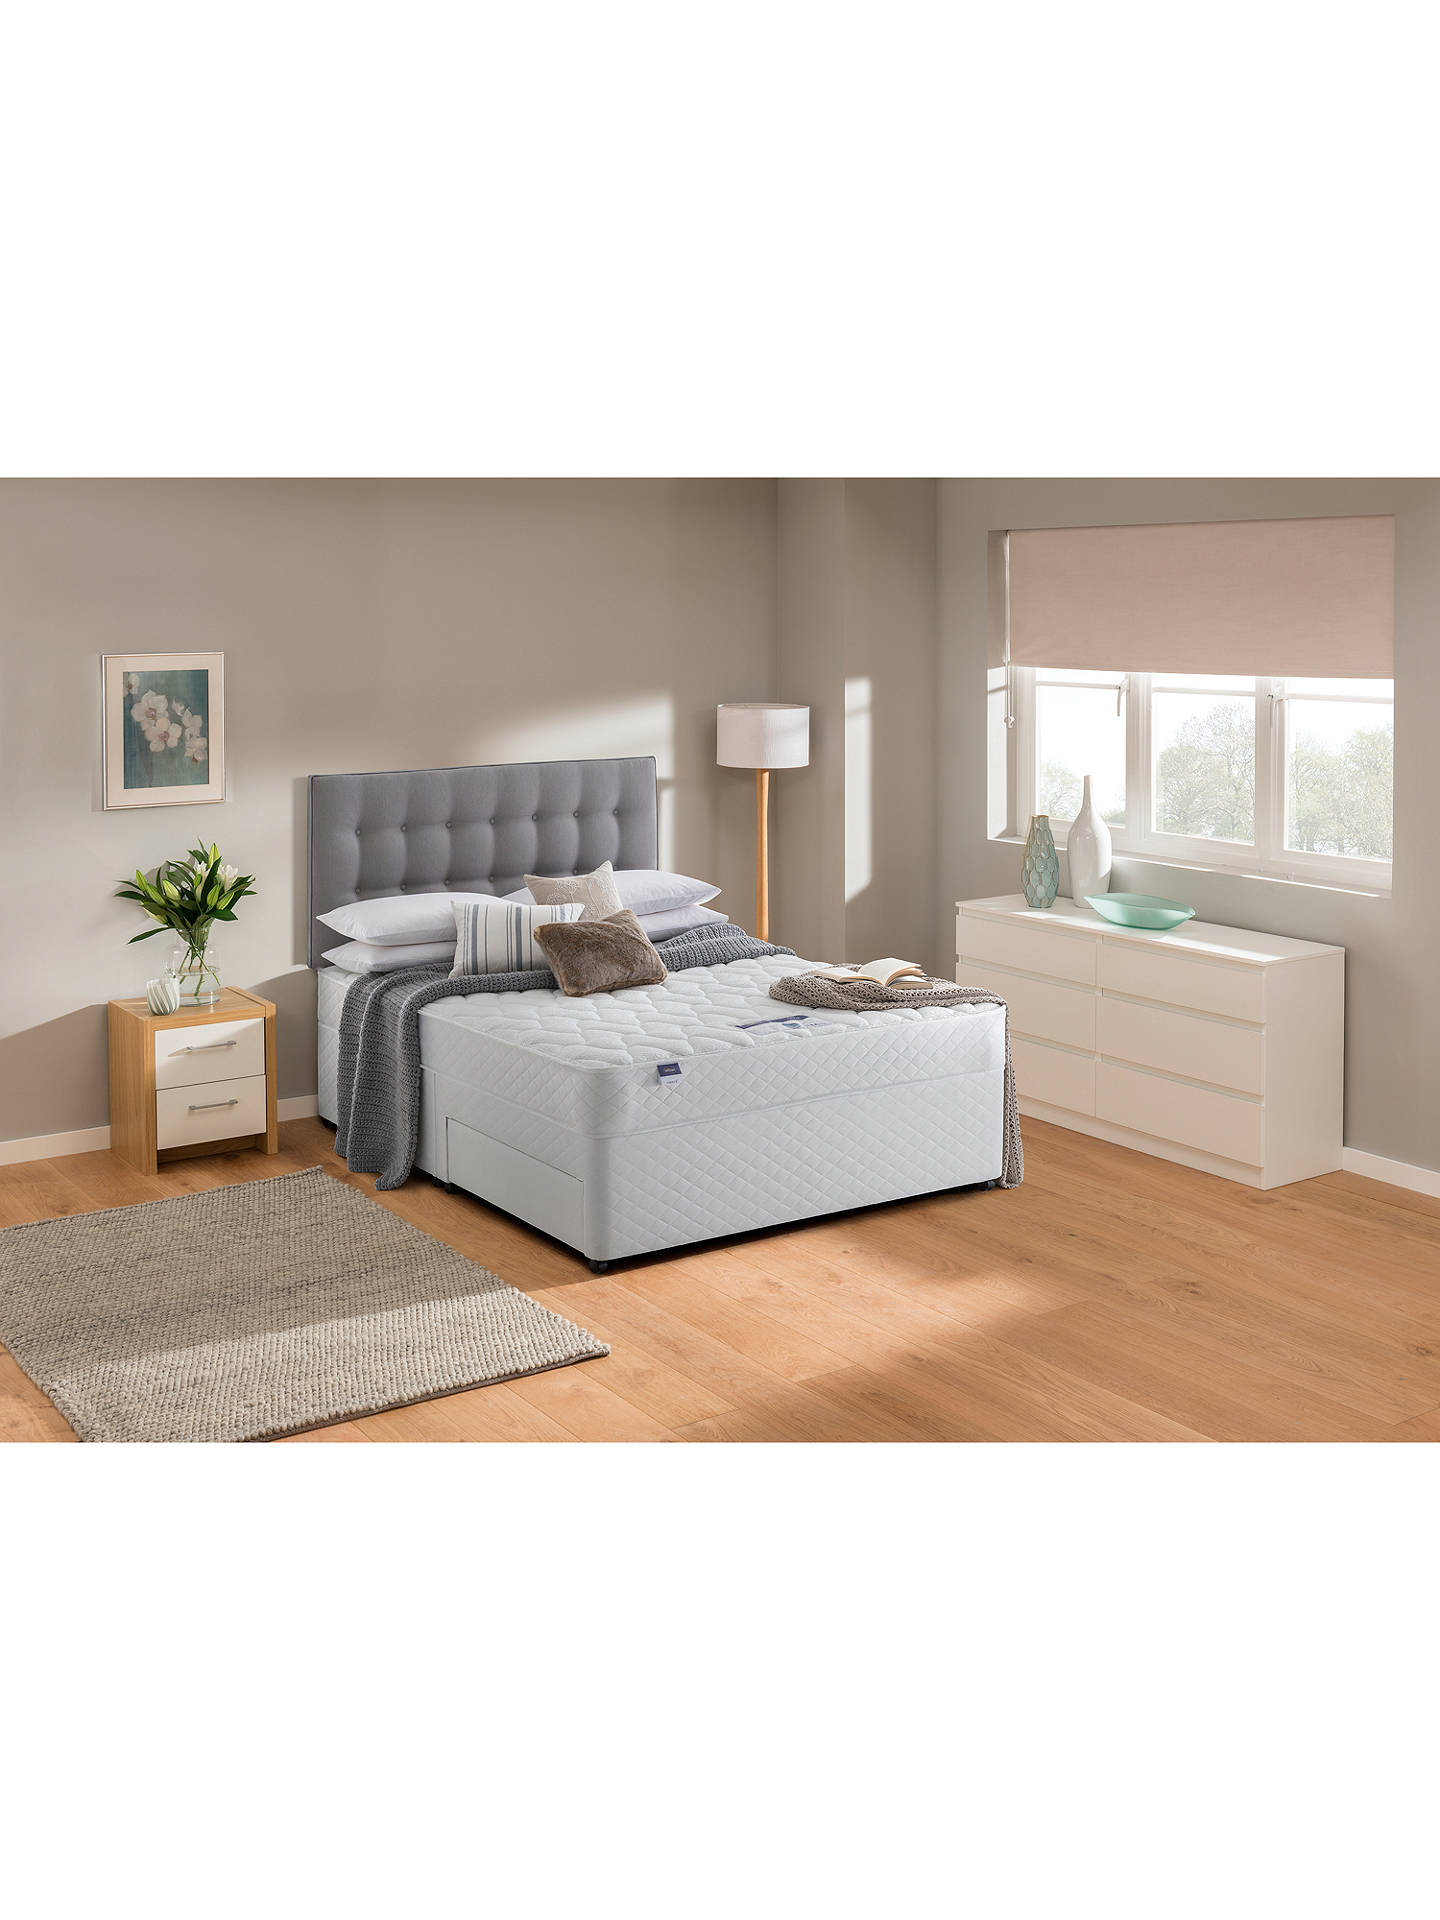 BuySilentnight Sleep Soundly Miracoil Comfort Mattress, Firm, Double Online at johnlewis.com